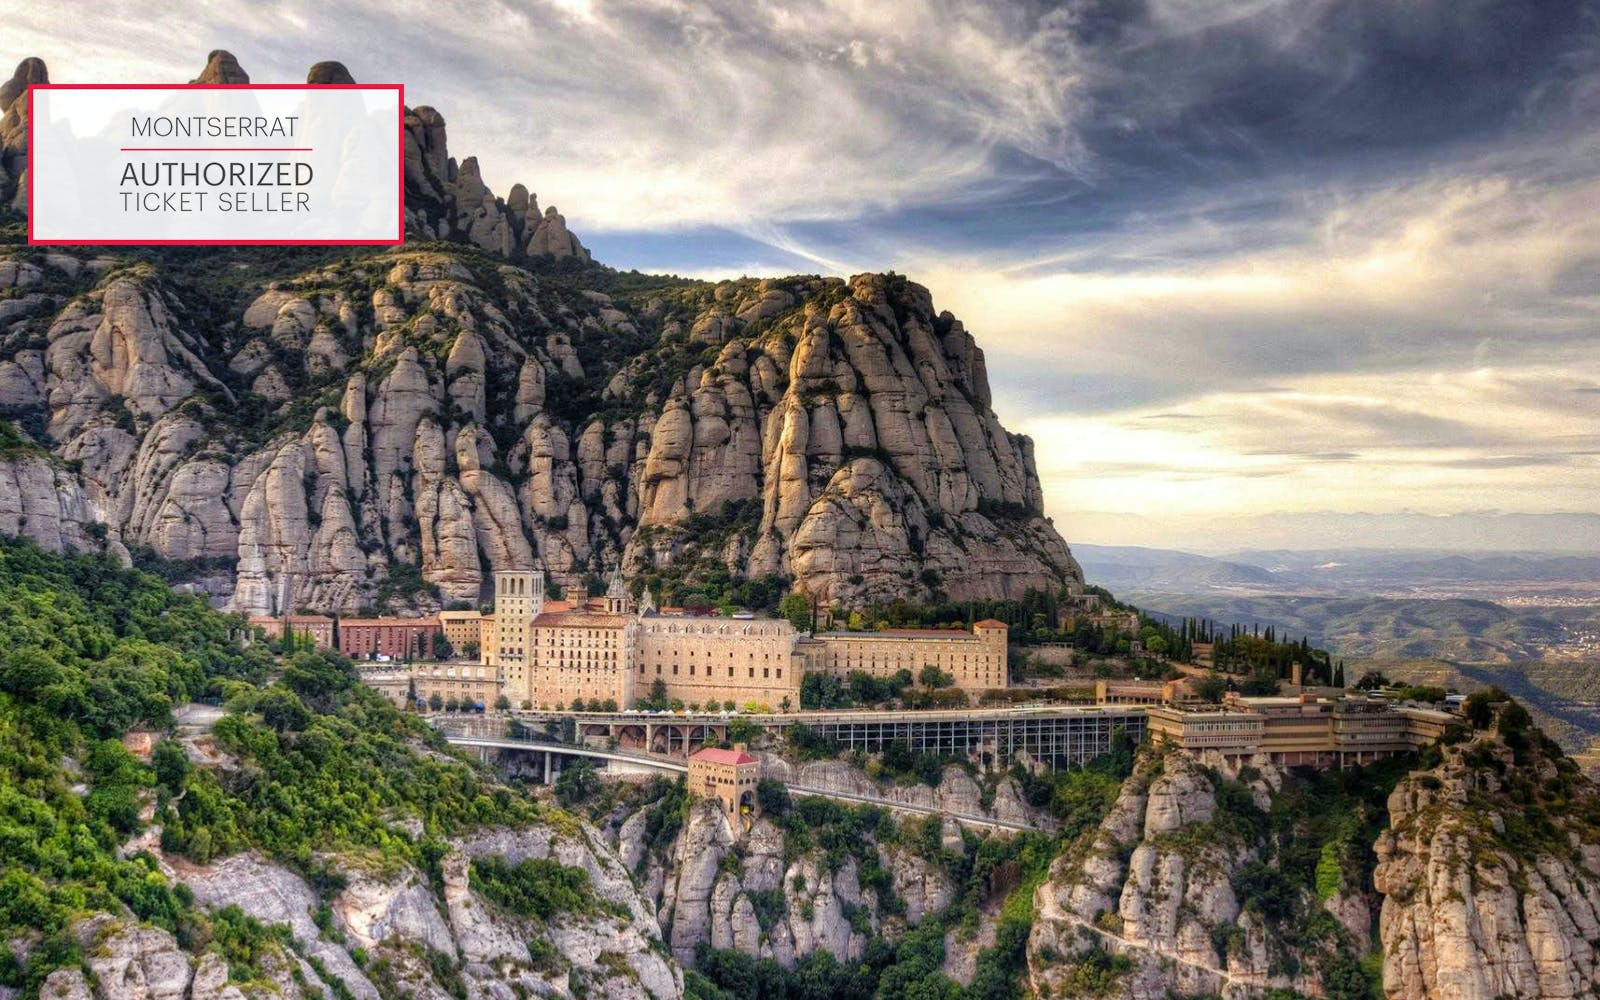 From Barcelona: Montserrat Monastry + Train Tickets